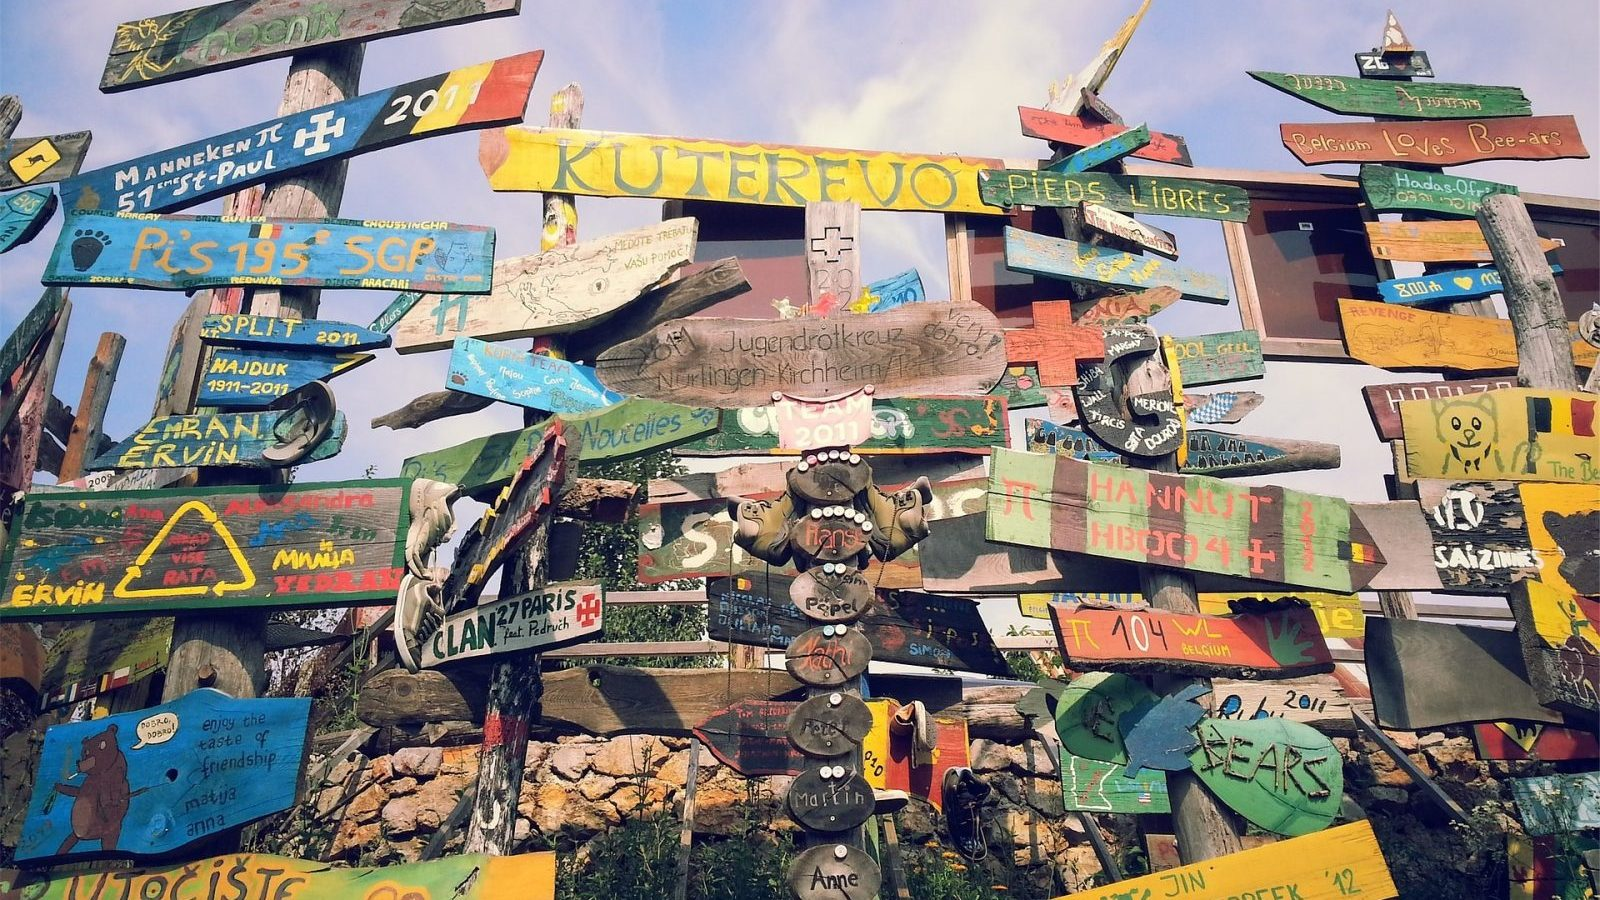 Image: a cluster of wooden signs pointing in many directions